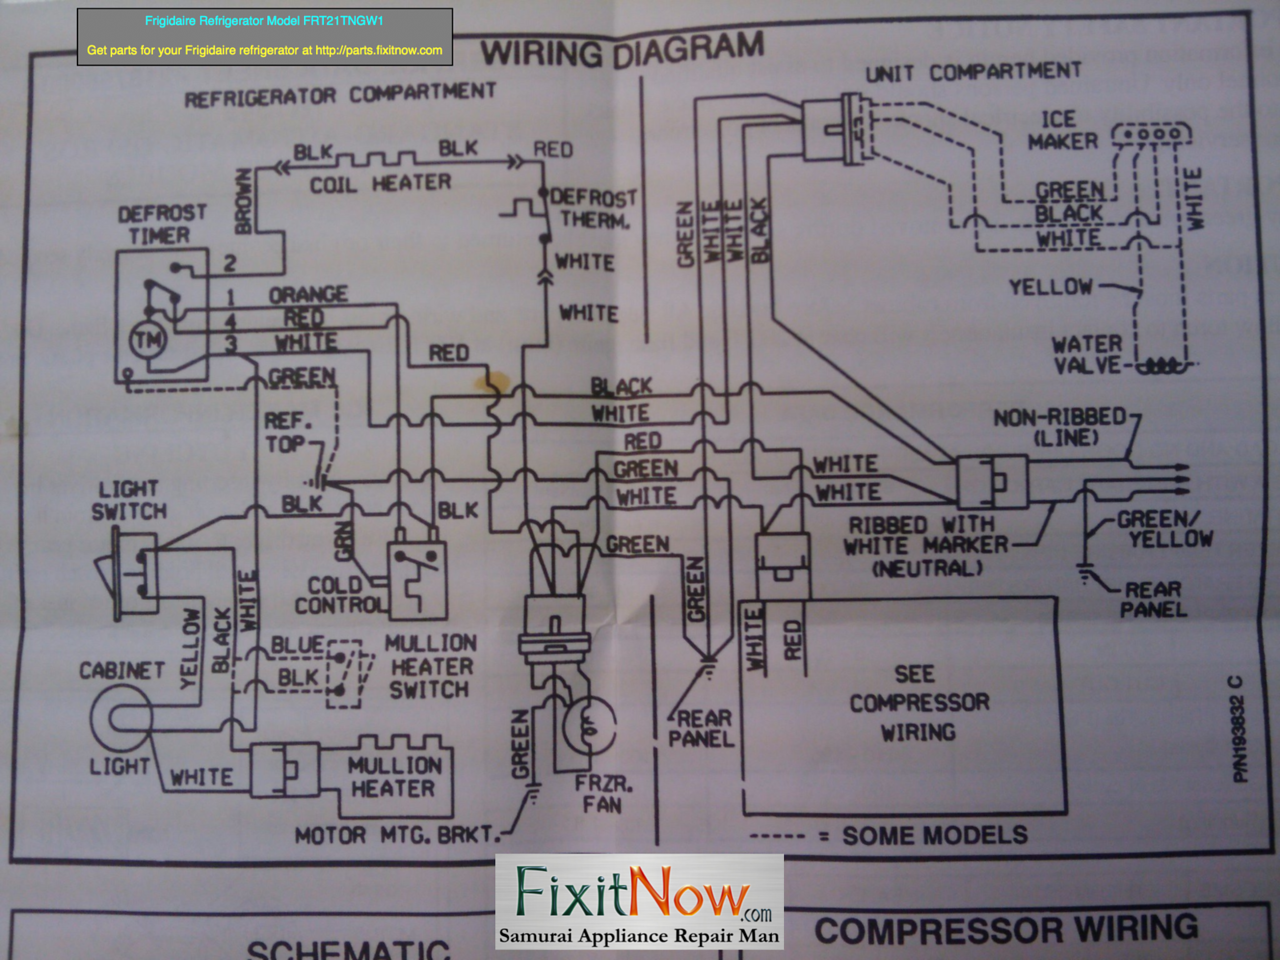 wiring diagrams and schematics appliantology rh appliantology smugmug com refrigeration wiring diagram whirlpool refrigerator wiring diagrams